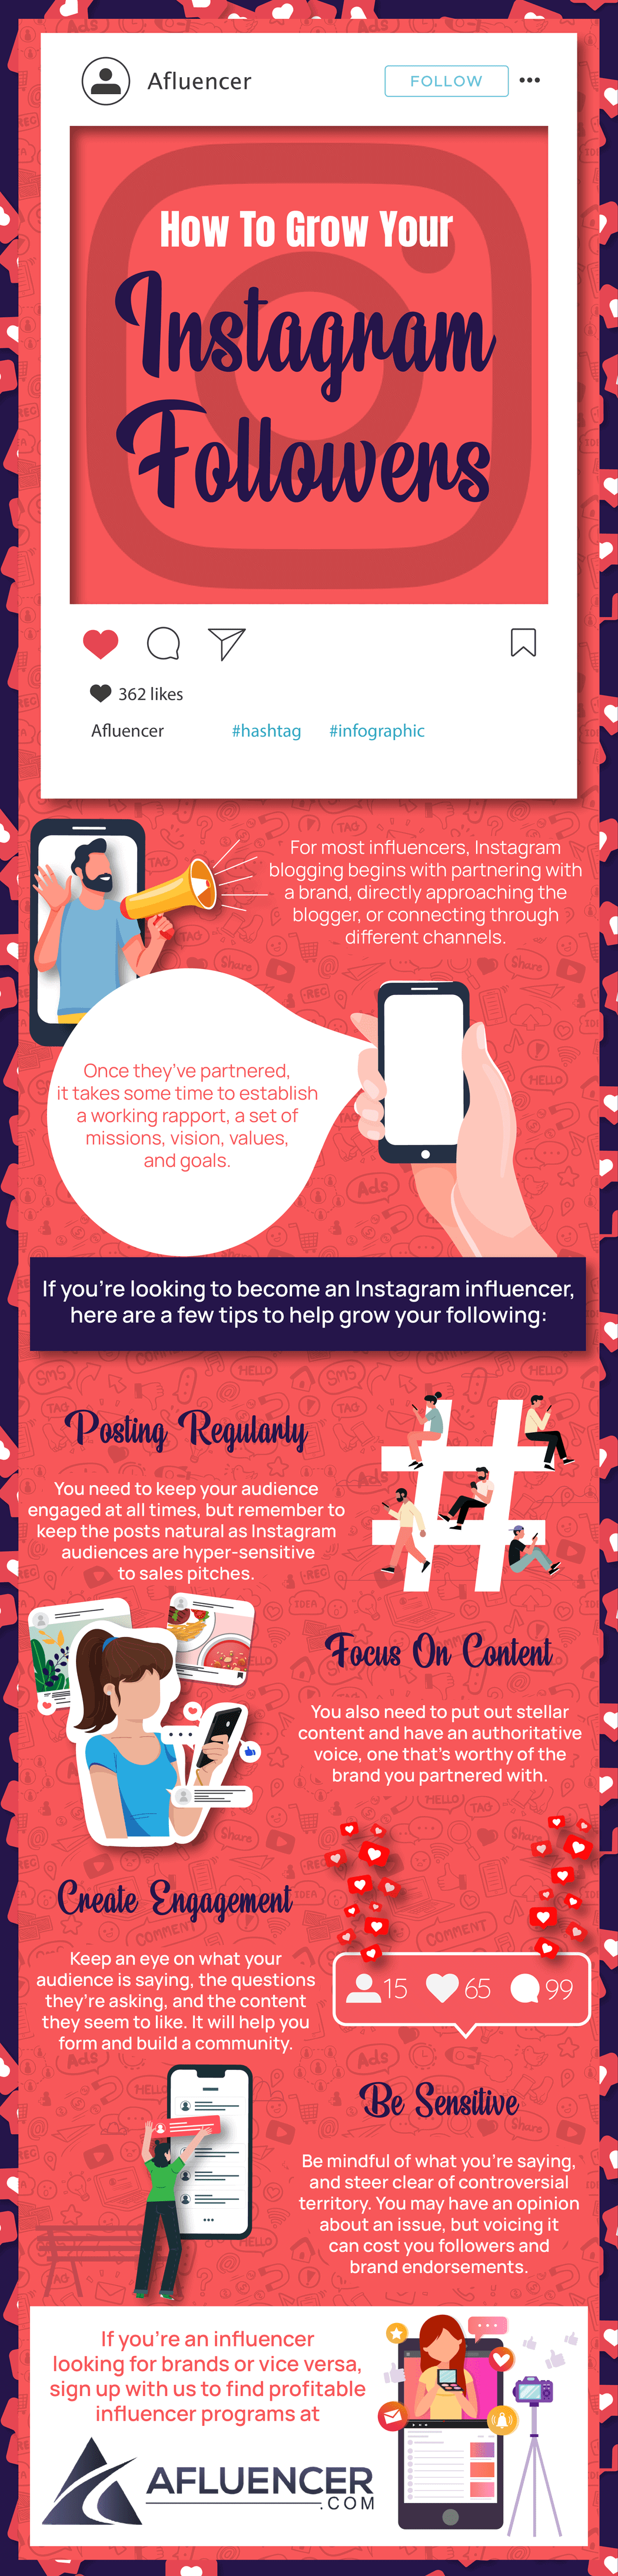 How to Grow Instagram Followers | Afluencer Infographic